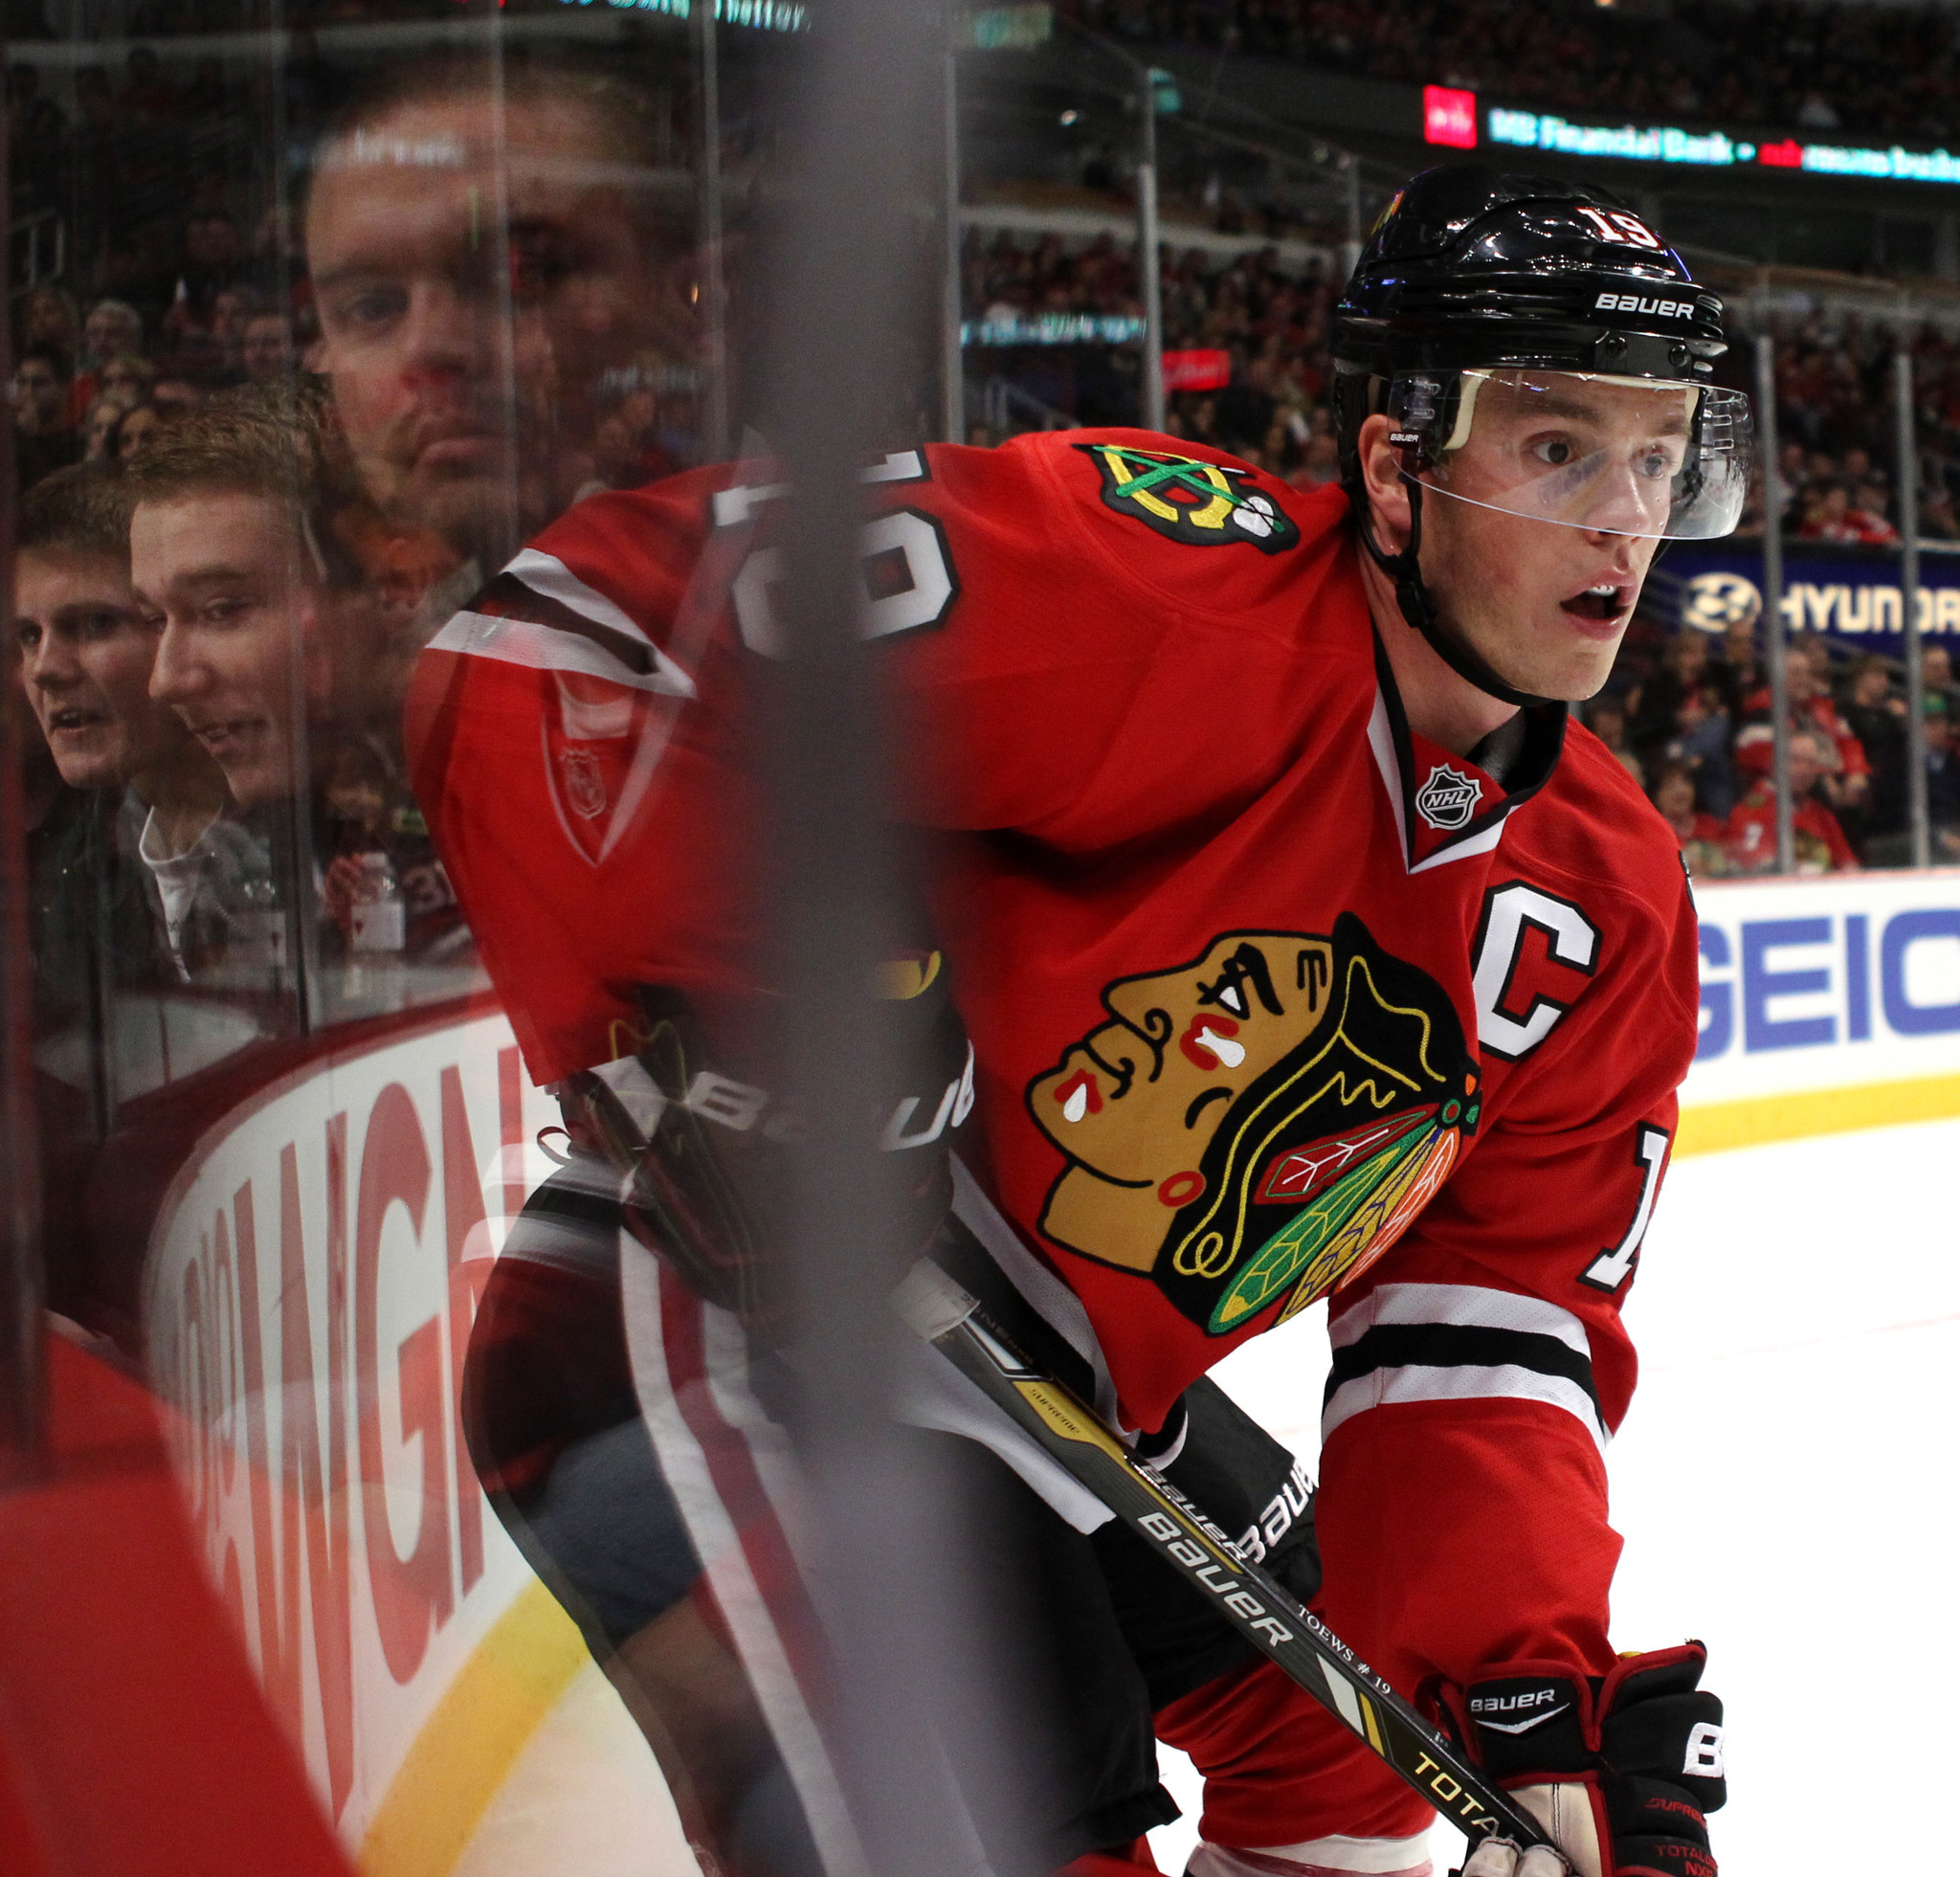 Blackhawks captain Jonathan Toews showing a feistier side this season